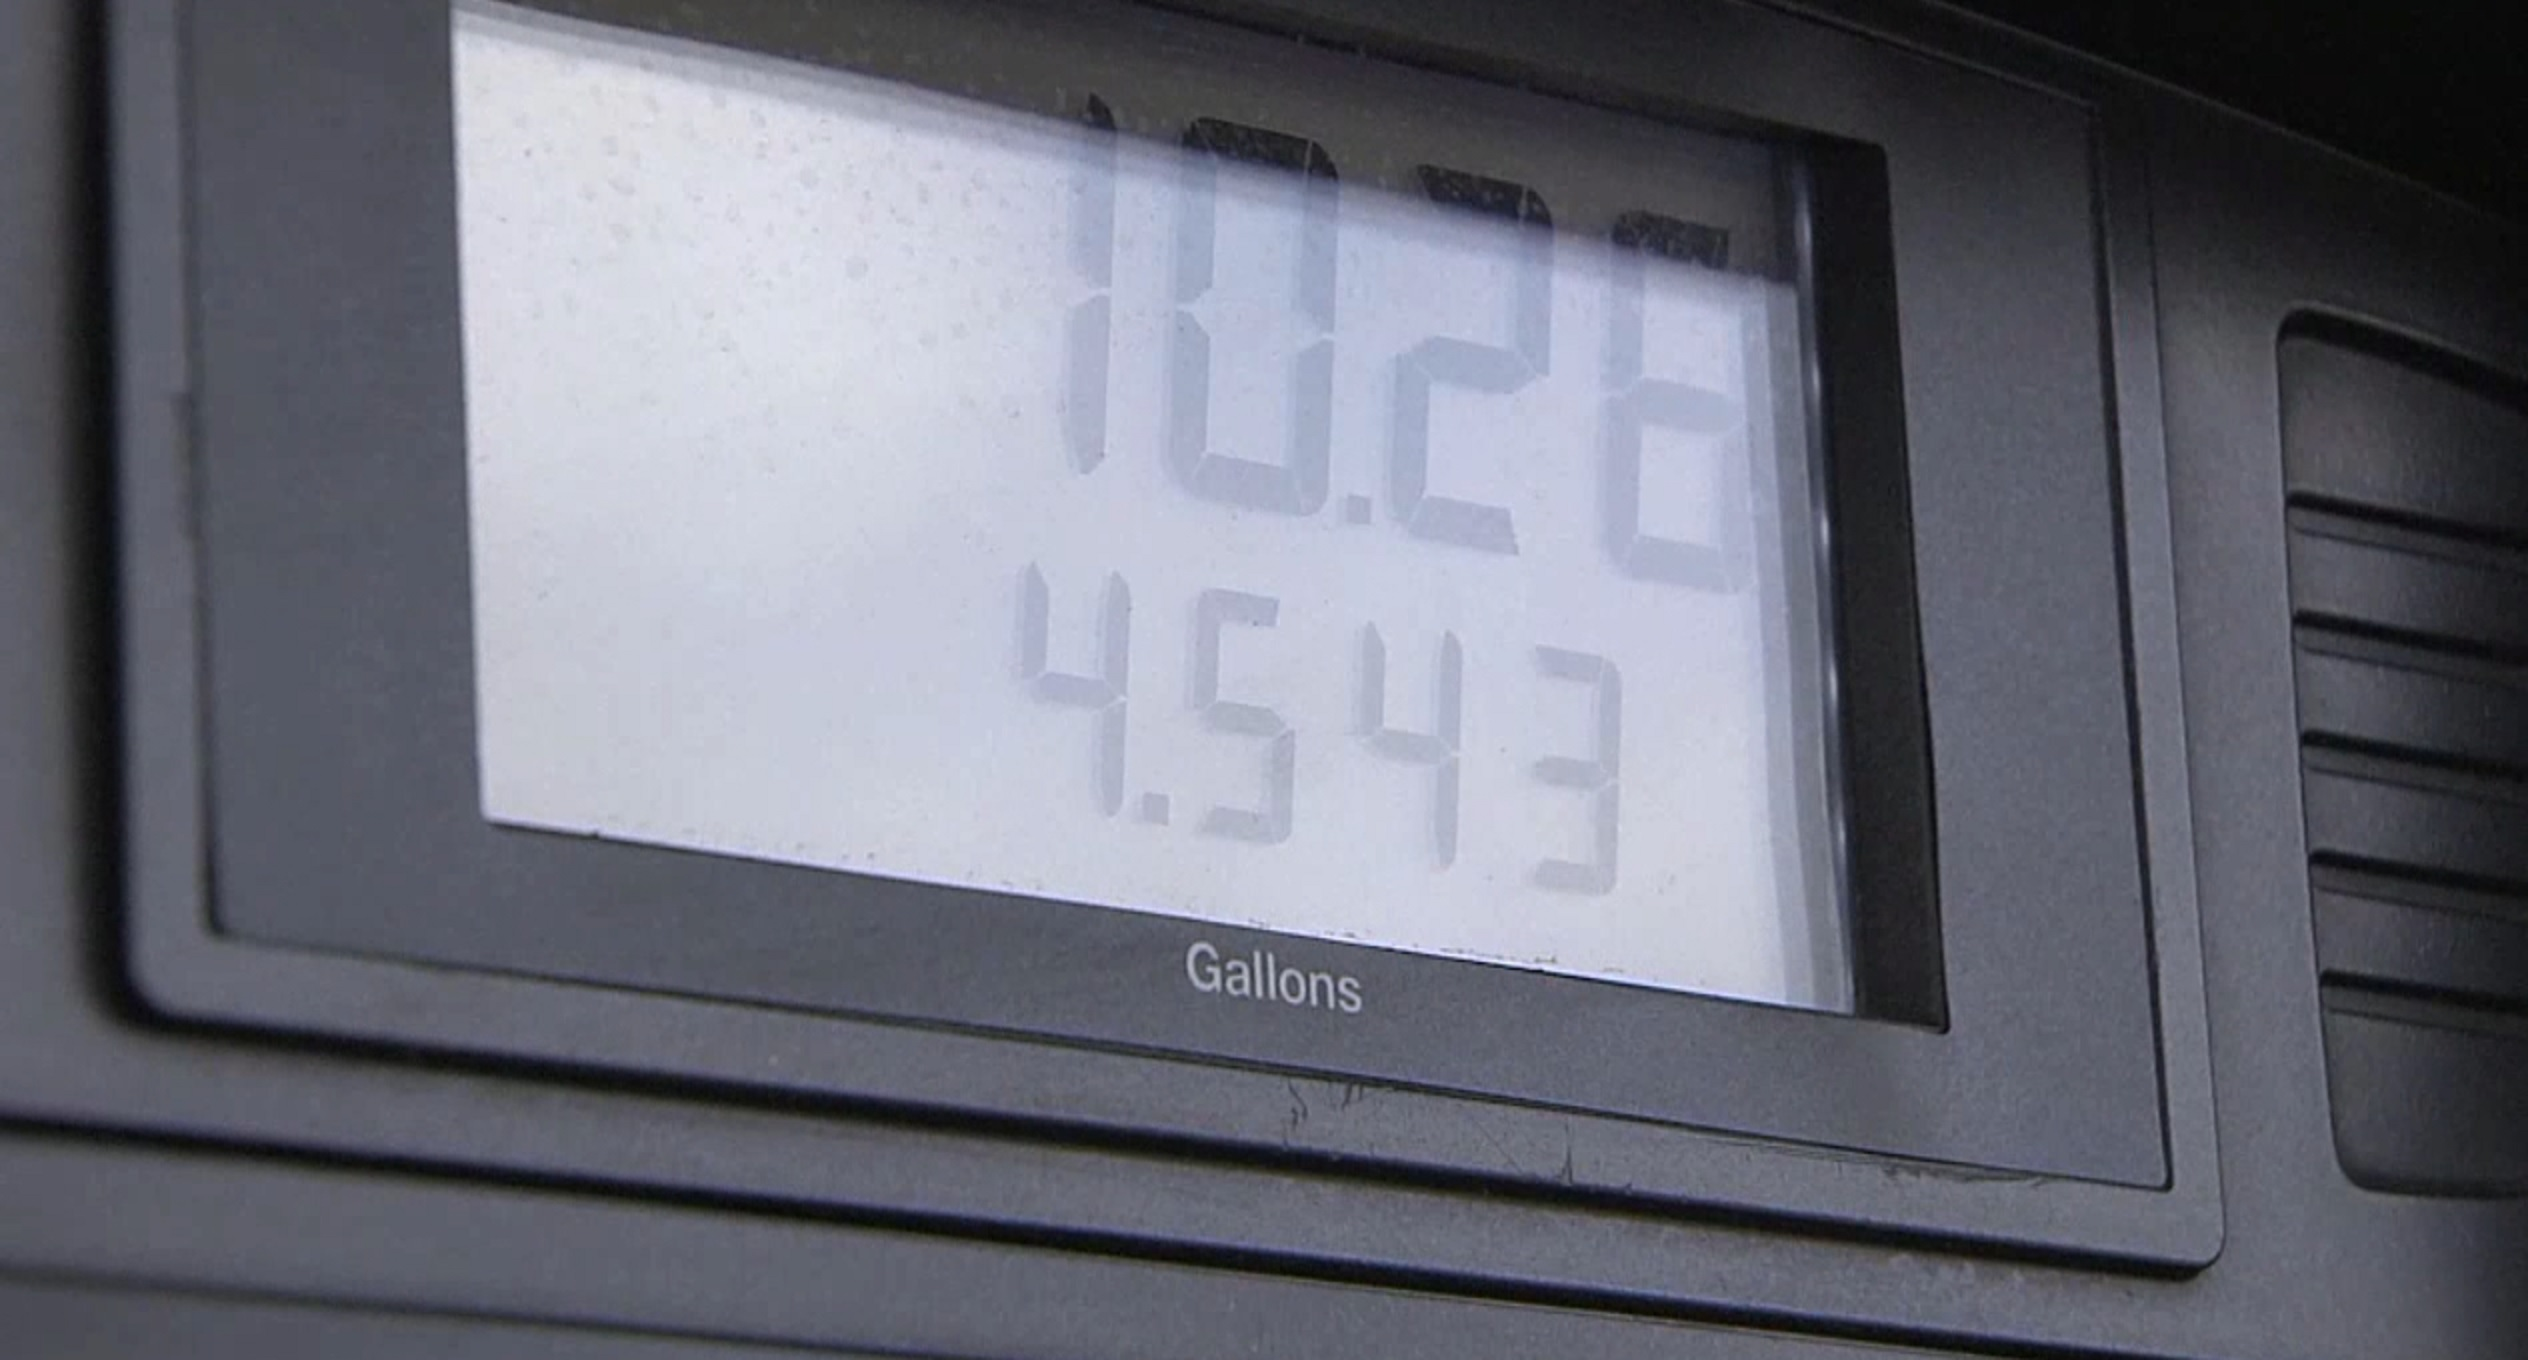 Gas Prices In Texas >> Aaa El Paso Tied With Midland For Highest Gas Prices In Texas